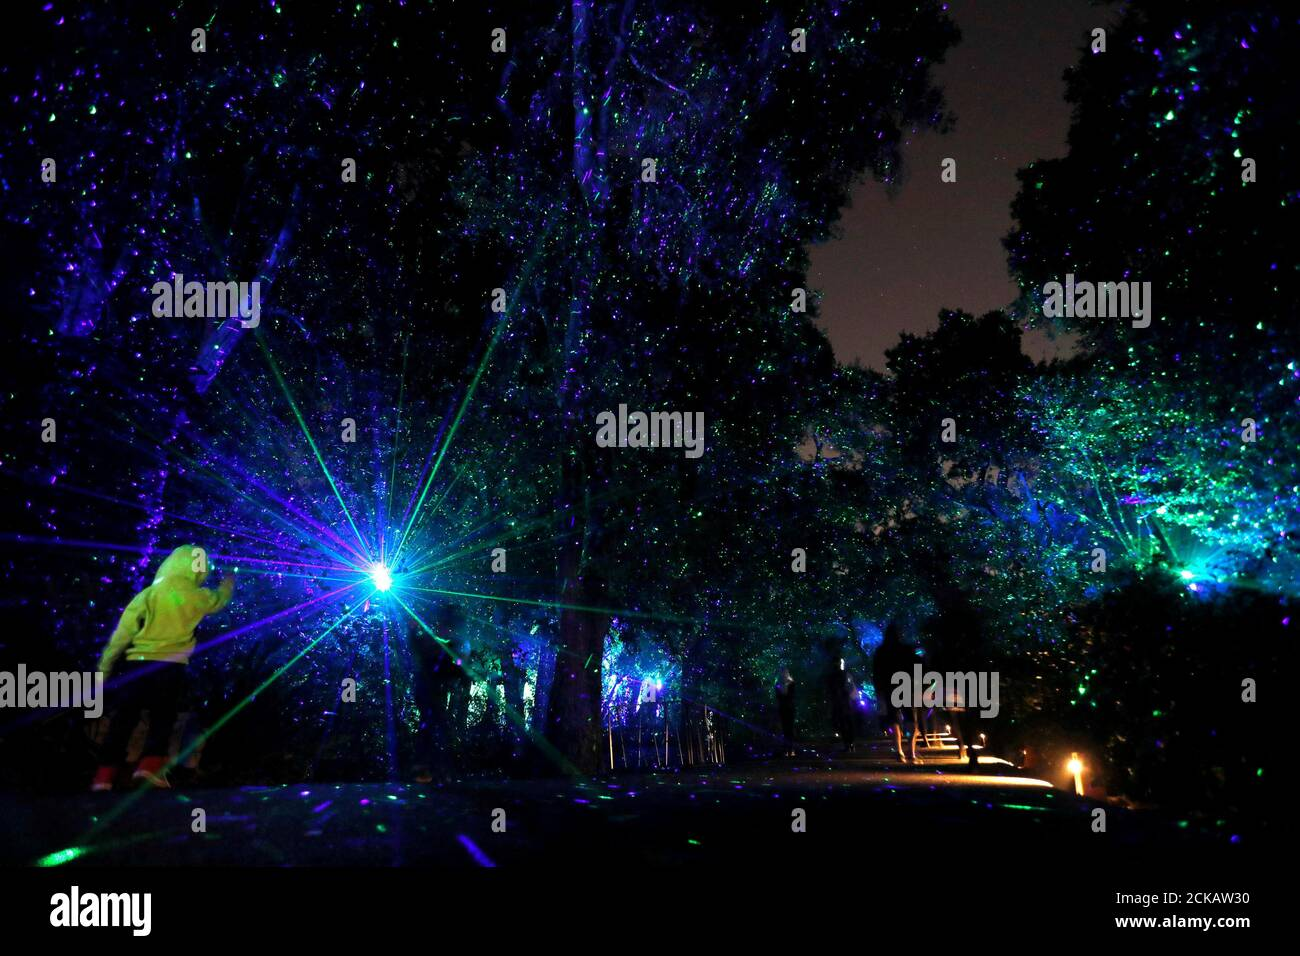 visitors walk through the installation ancient forest which is part of the exhibit enchanted forest of light at descanso gardens in la canada flintridge california us november 21 2017 reutersmario anzuoni tpx images of the day 2CKAW30 - Enchanted Forest Of Light Descanso Gardens December 21